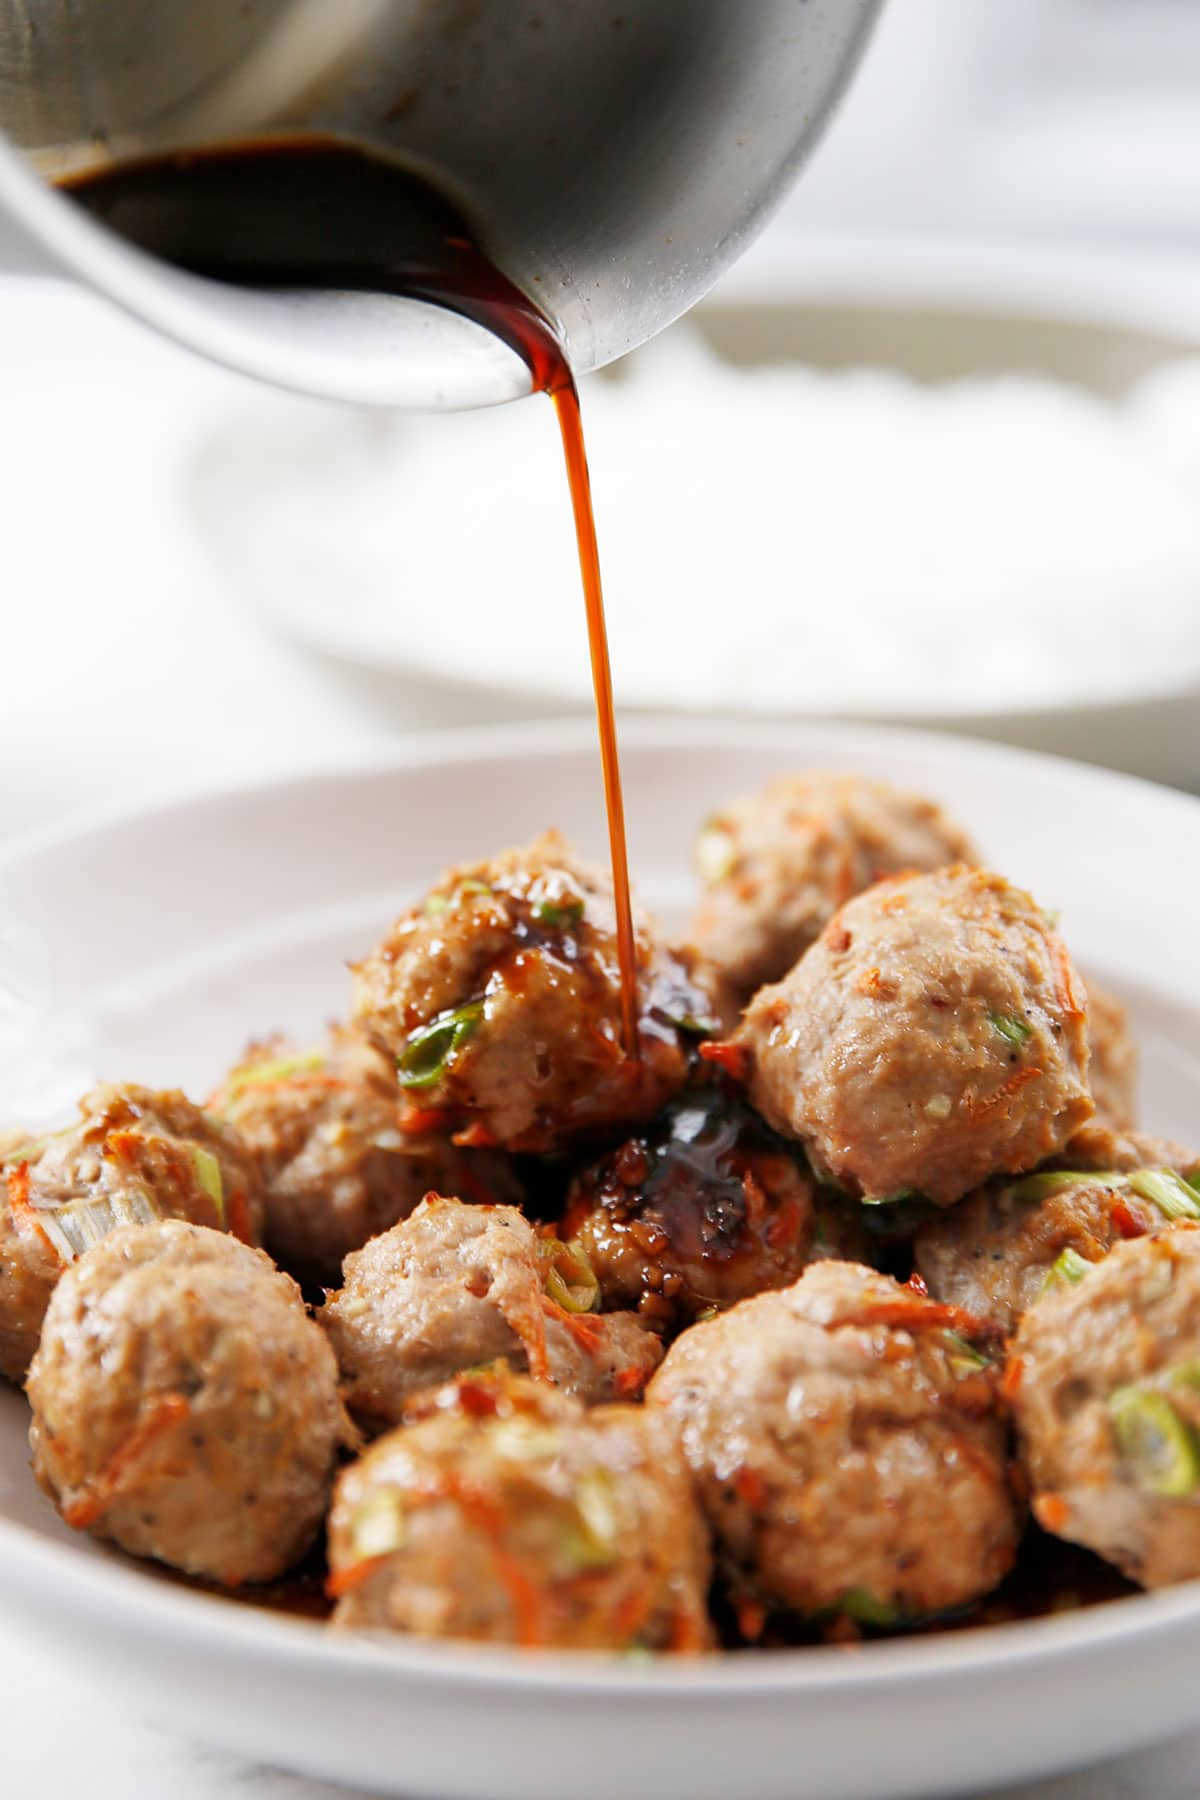 Pouring sauce over thai meatballs.